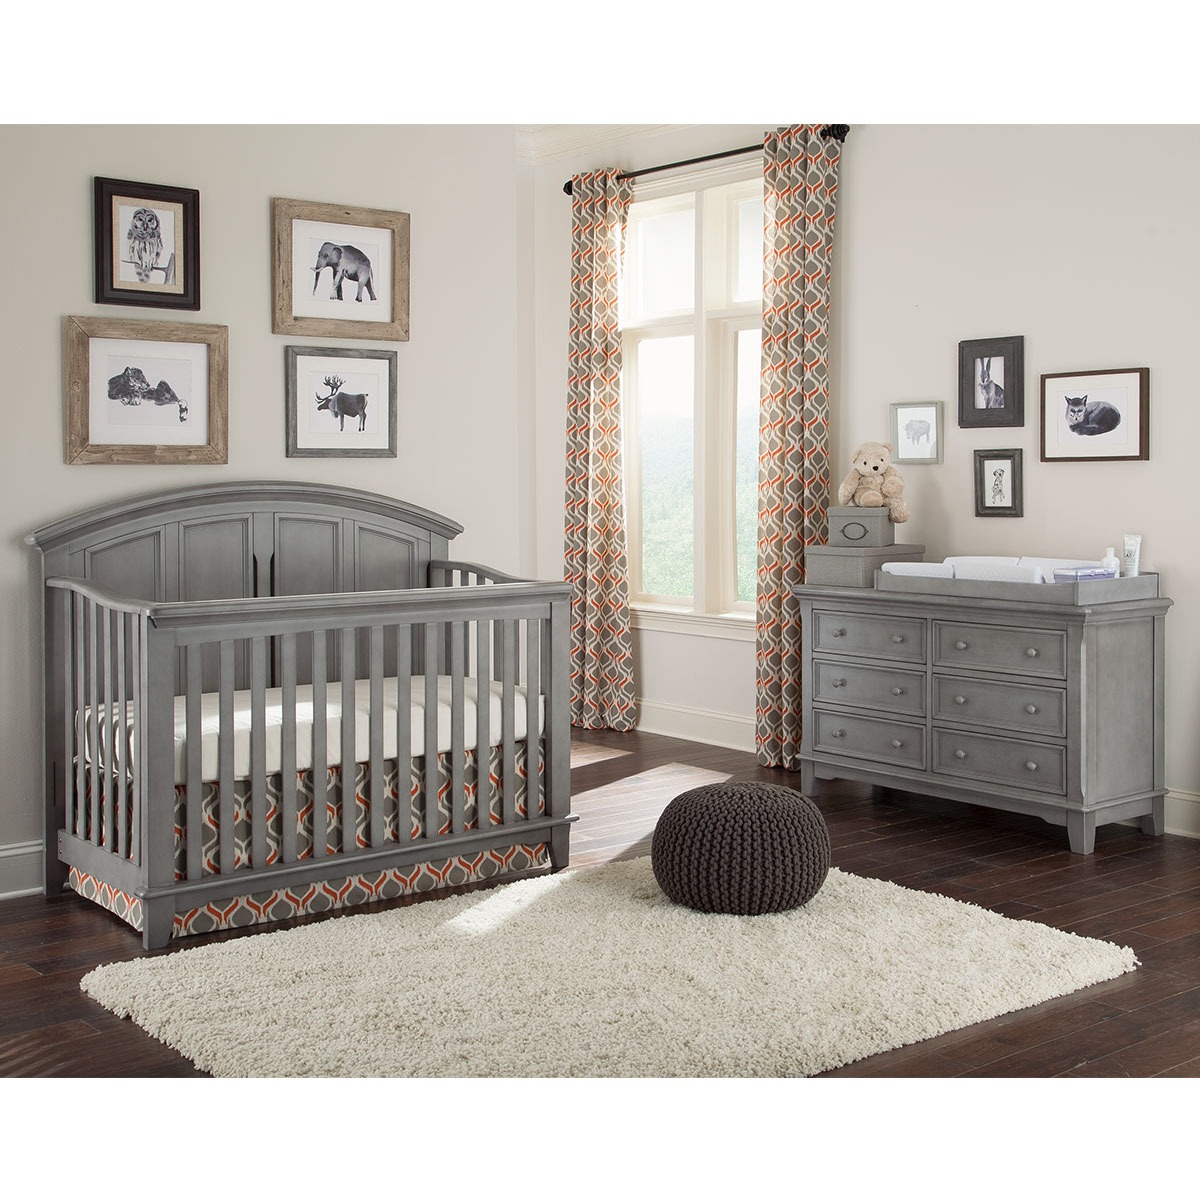 design crib convertible cribs westwood foundry pewter p brushed